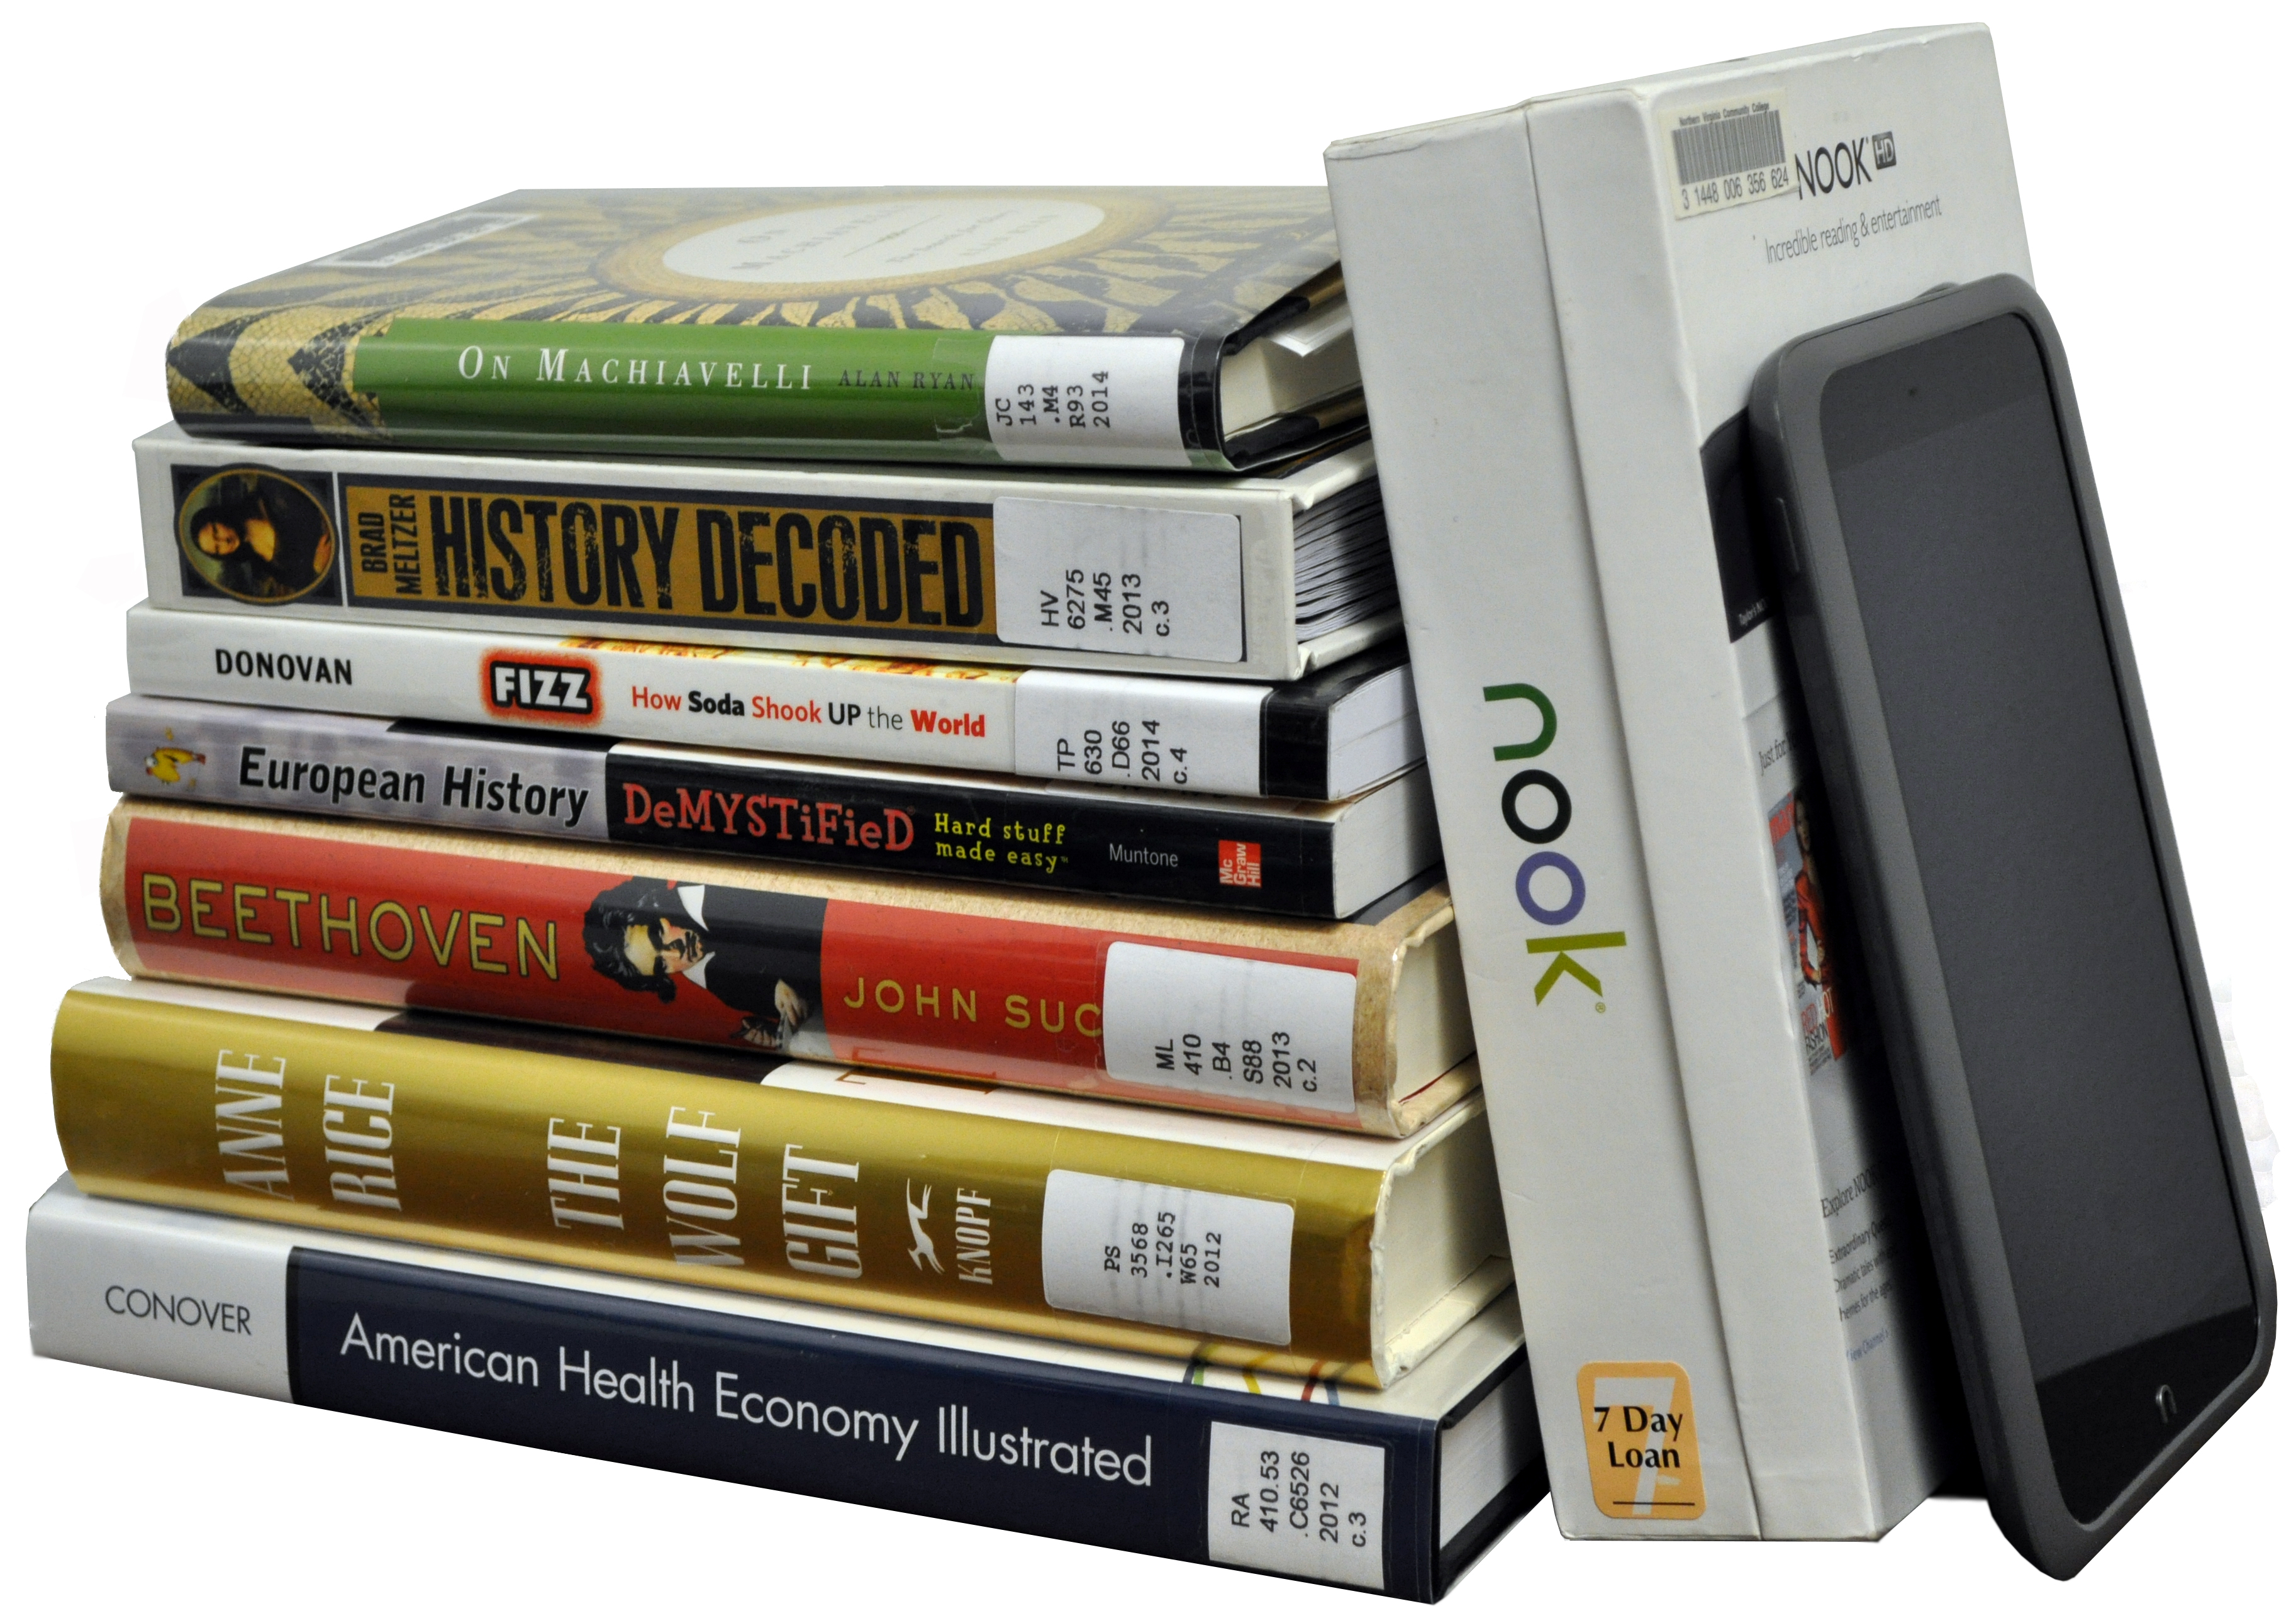 Image of books and e-reader